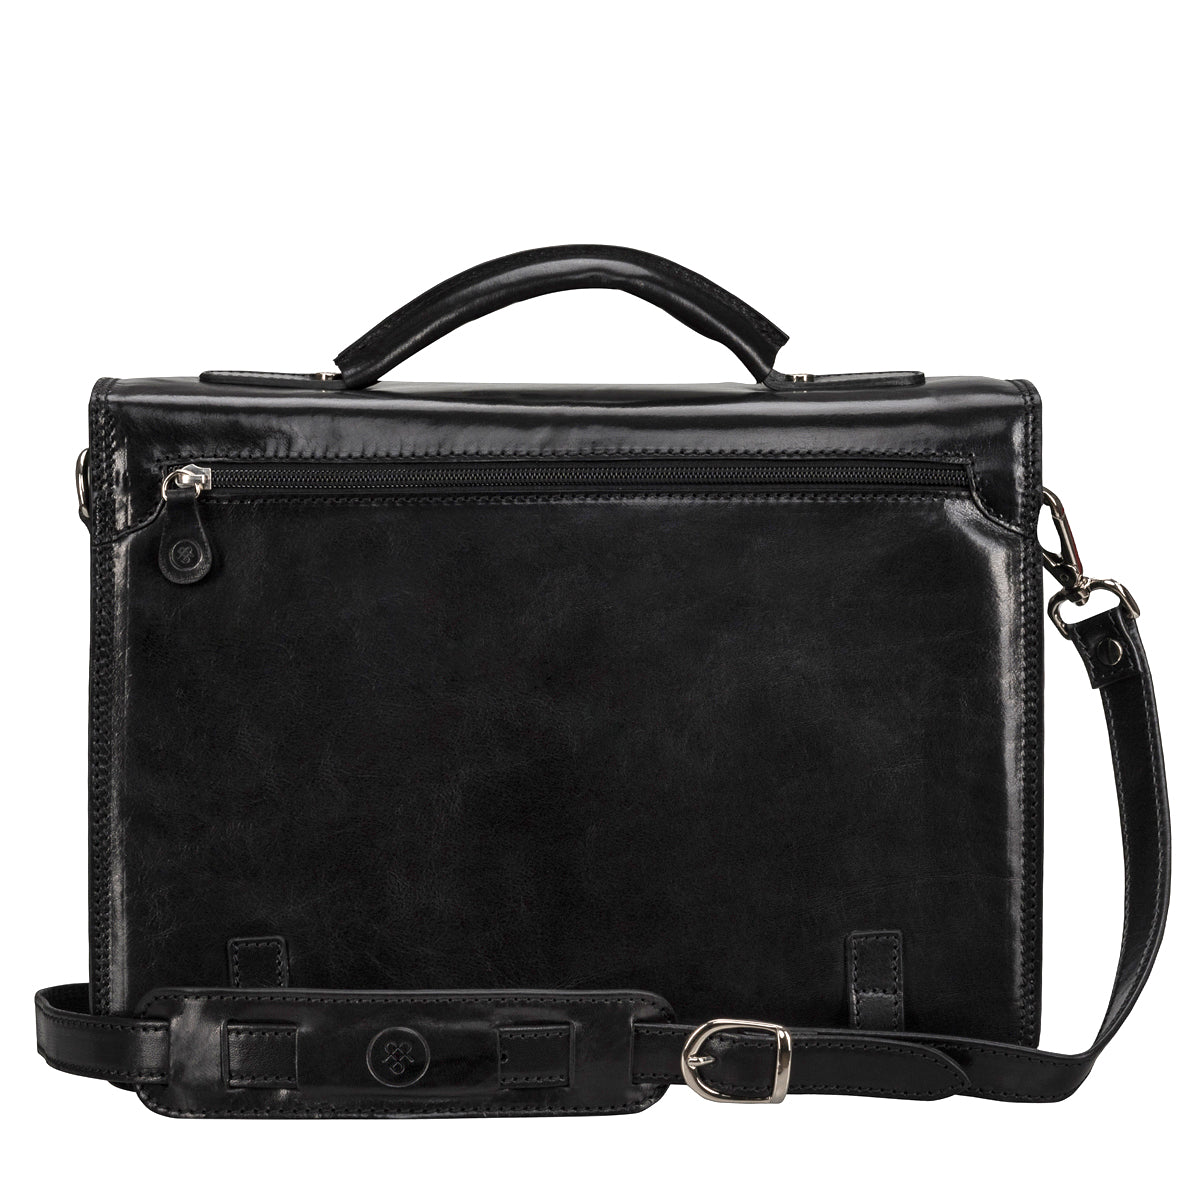 Image 4 of the 'Battista' Black Veg-Tanned Leather Satchel Briefcase